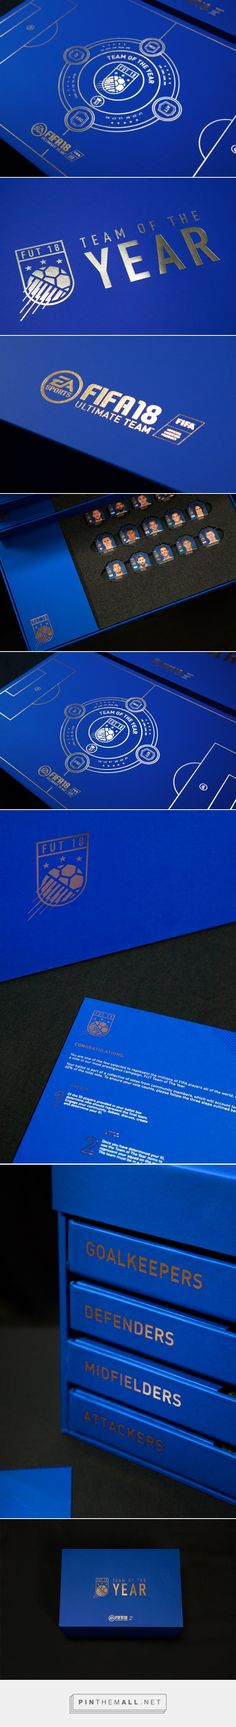 Fifa 18 Team Of The Year Ballot Box design by Ravin Ed & Jonathan Wang - http://www.packagingoftheworld.com/2018/01/fifa-18-team-of-year-ballot-box.html